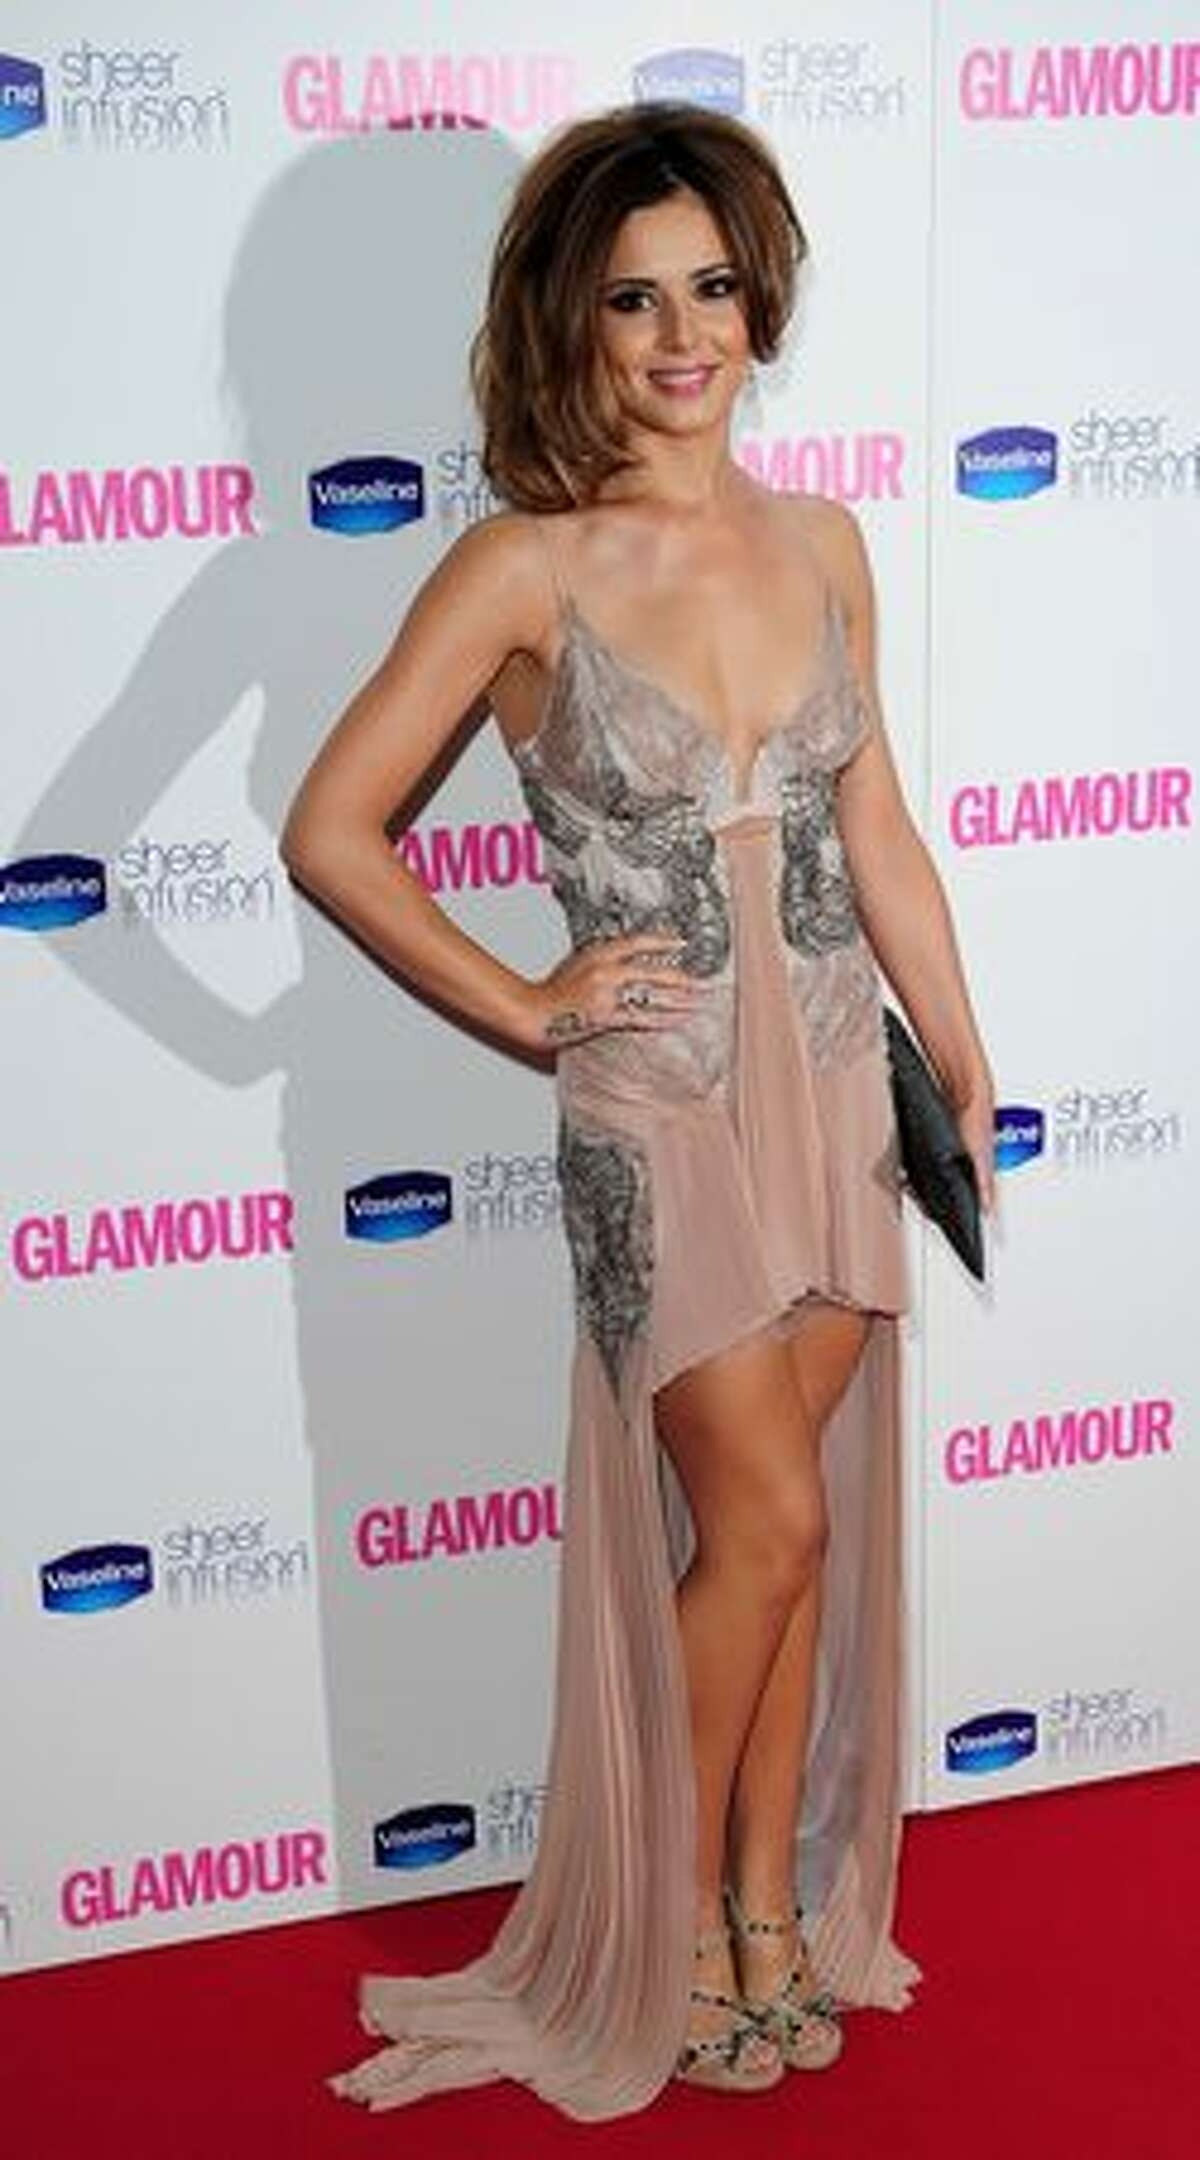 Cheryl Cole arrives at the 2010 Glamour Women of The Year Awards.